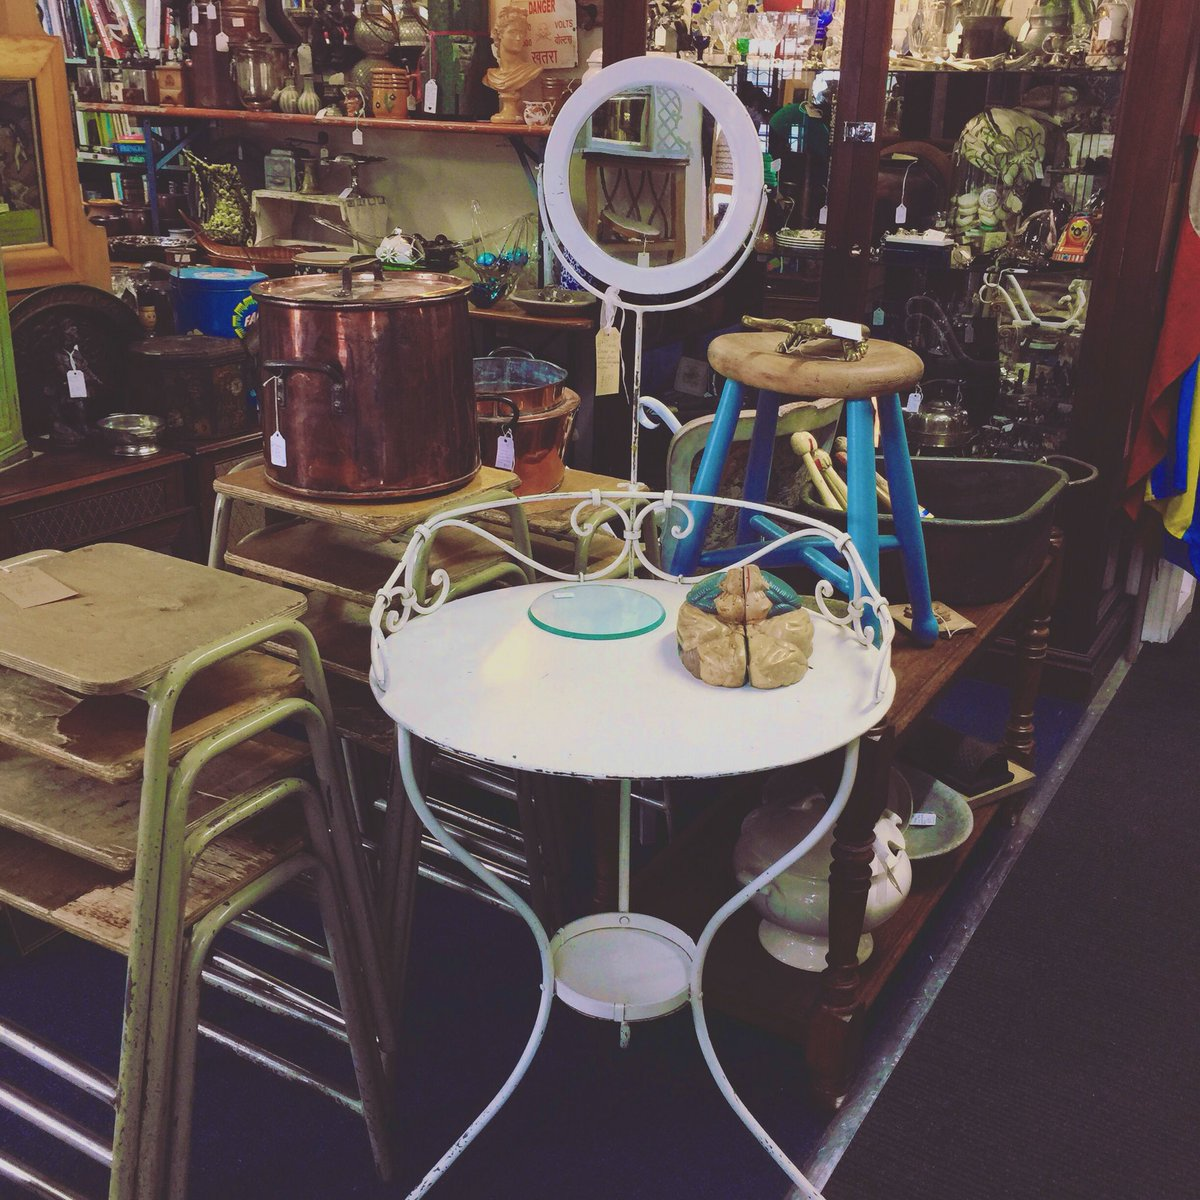 Enjoy your evening! #frenchwashstand #europeangoodies #astraantiquescentre #hemswell #lincolnshire #antiqueshunting #backopentomorrow https://t.co/A0hY8kJXJE